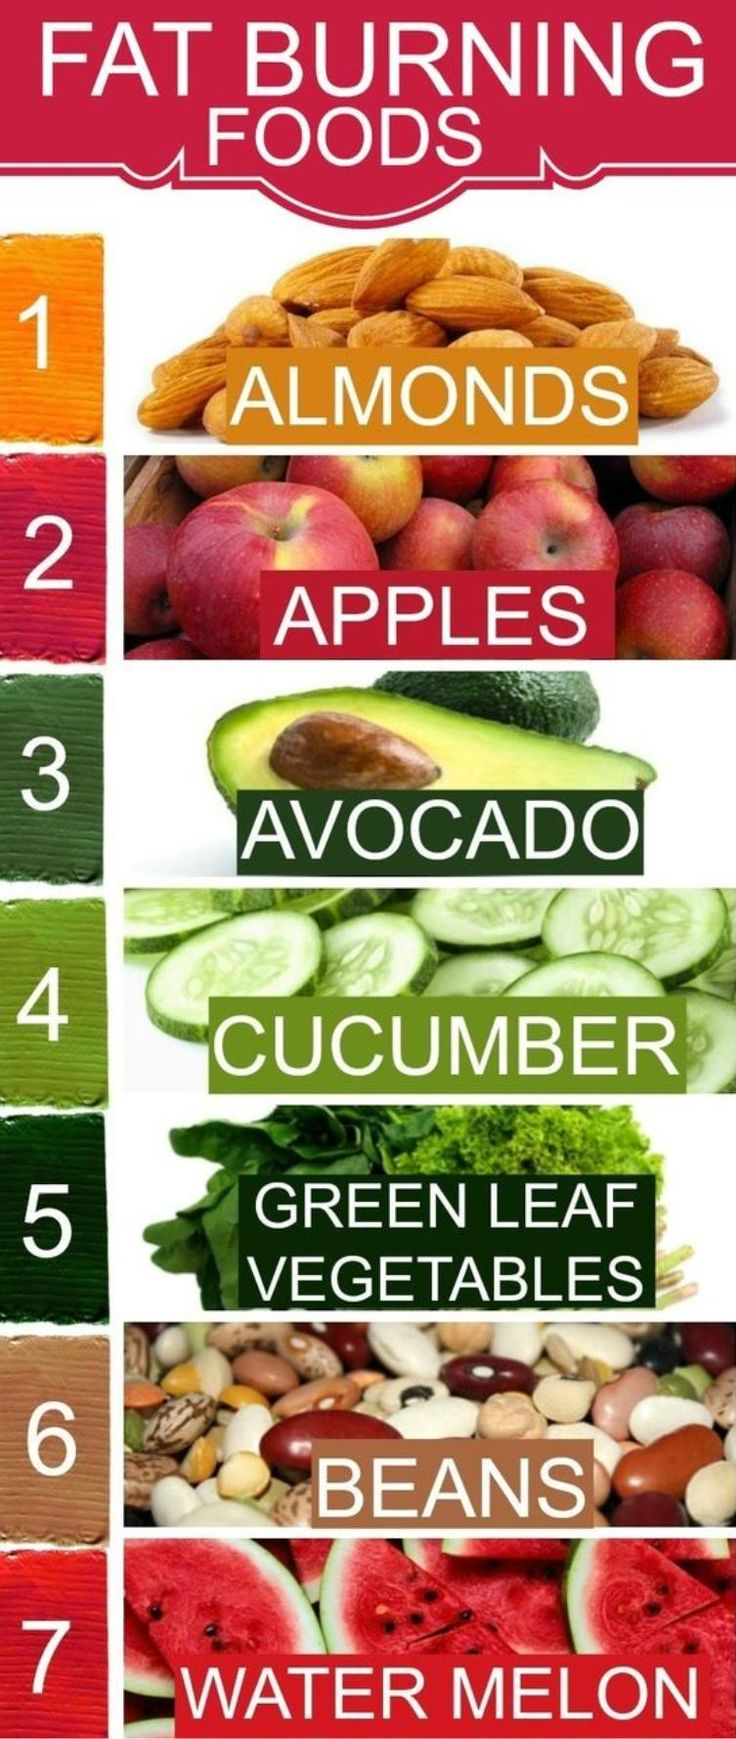 Best 25 weight loss foods ideas on pinterest weight loss food foods to avoid during weight loss ccuart Images